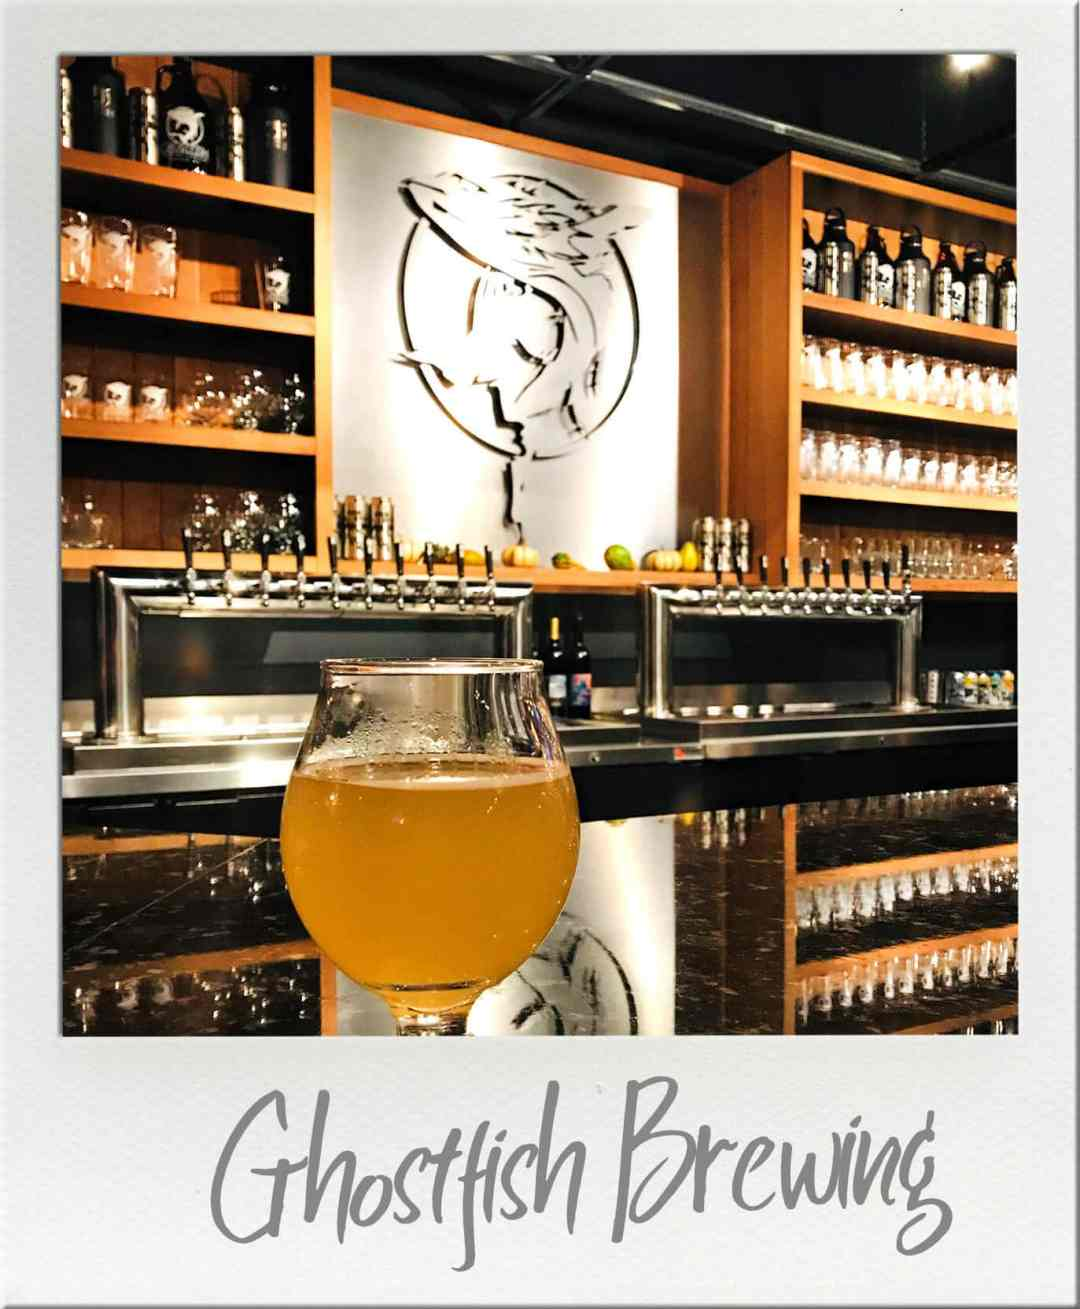 Beer and back bar at Ghostfish Brewing in SODO